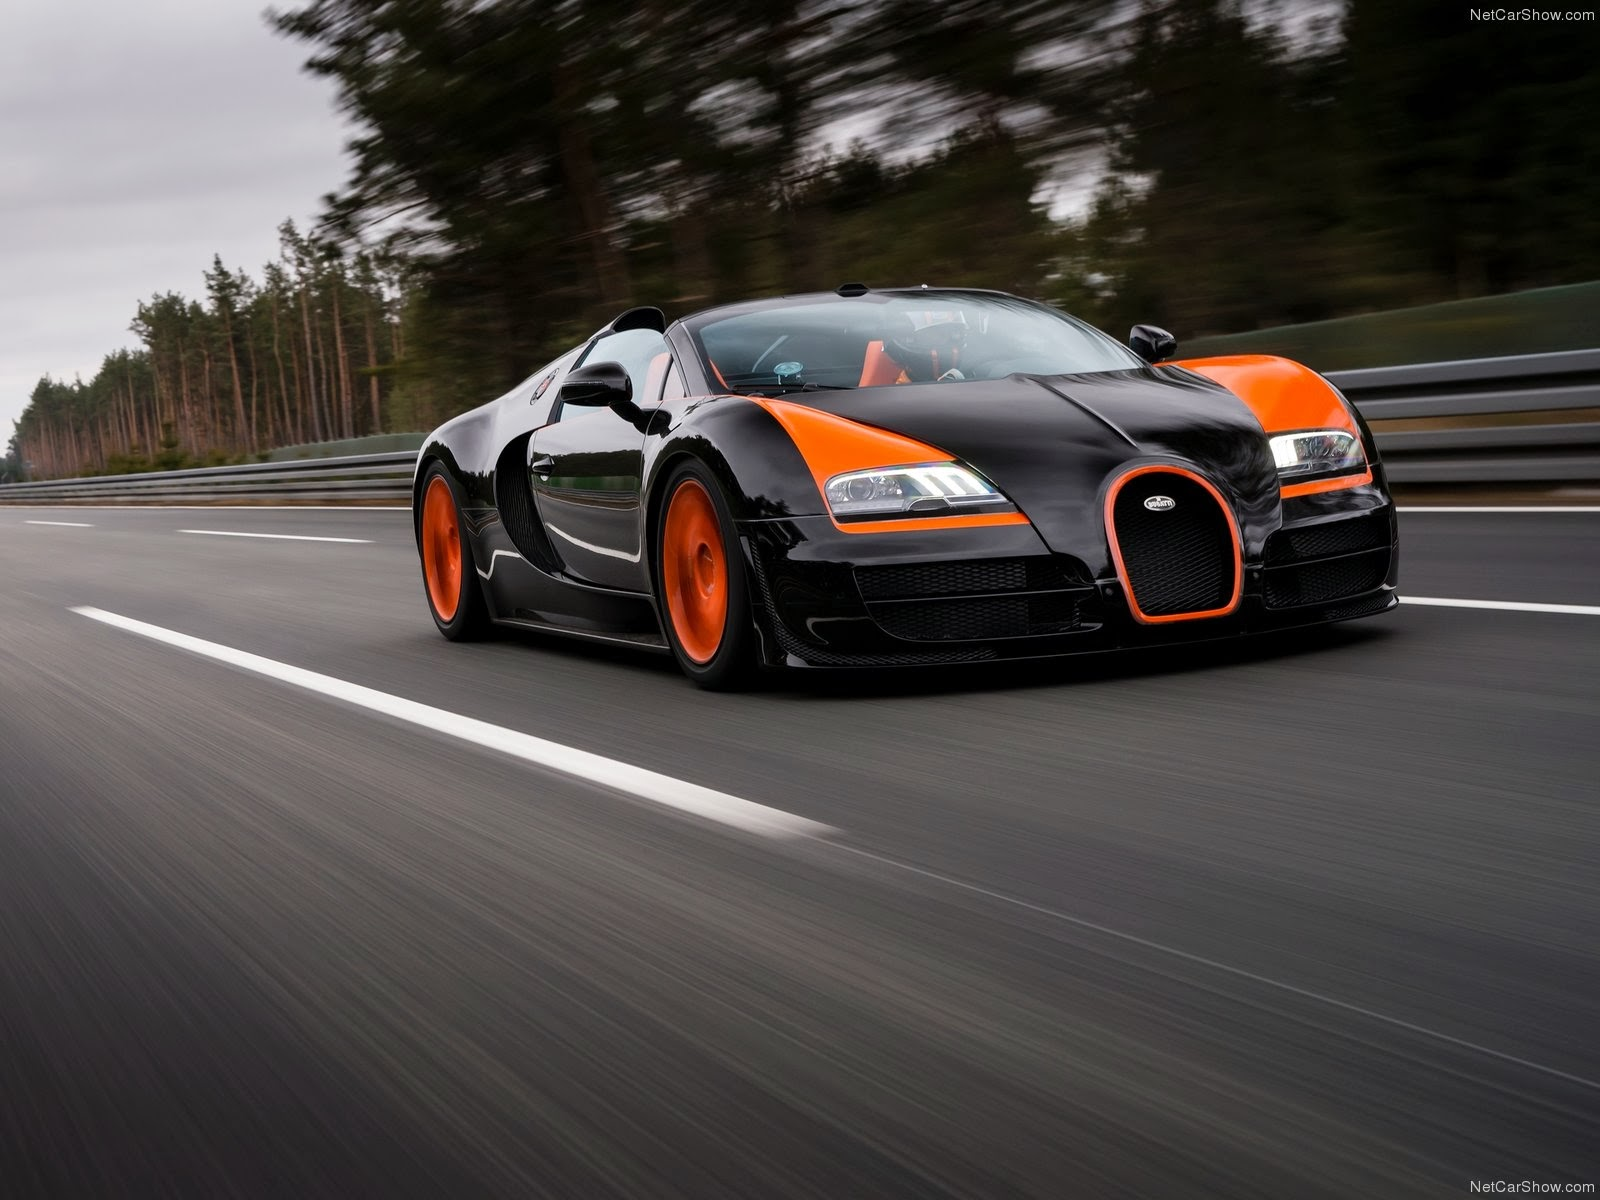 Bugatti Cars Wallpapers 1080p Bugatti Iphone Wallpaper Hd: HD Cars Wallpapers: Bugatti Veyron HD Wallpapers